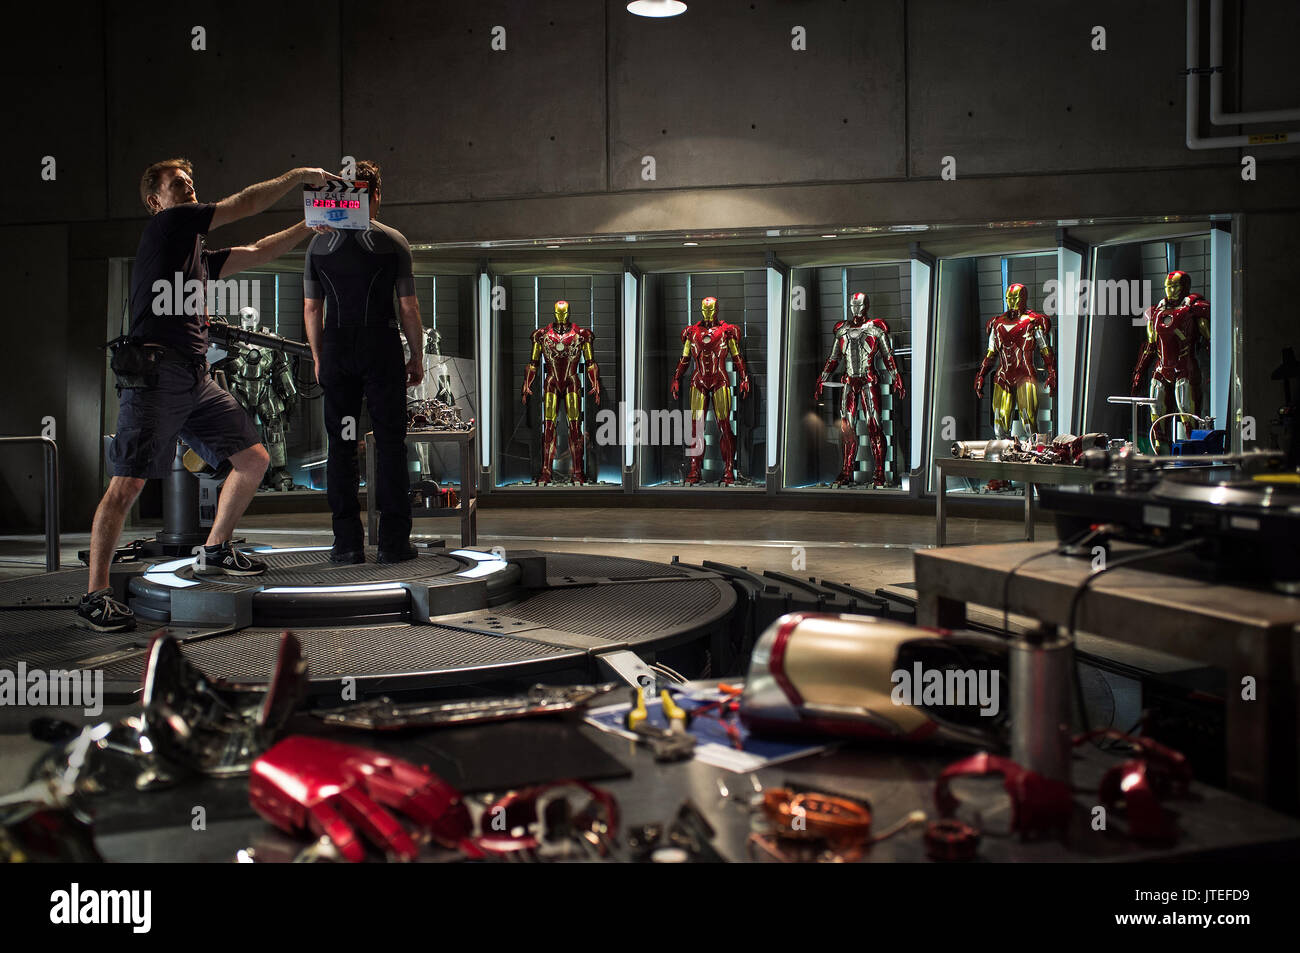 BEHIND THE SCENES IRON MAN 3 (2013) - Stock Image